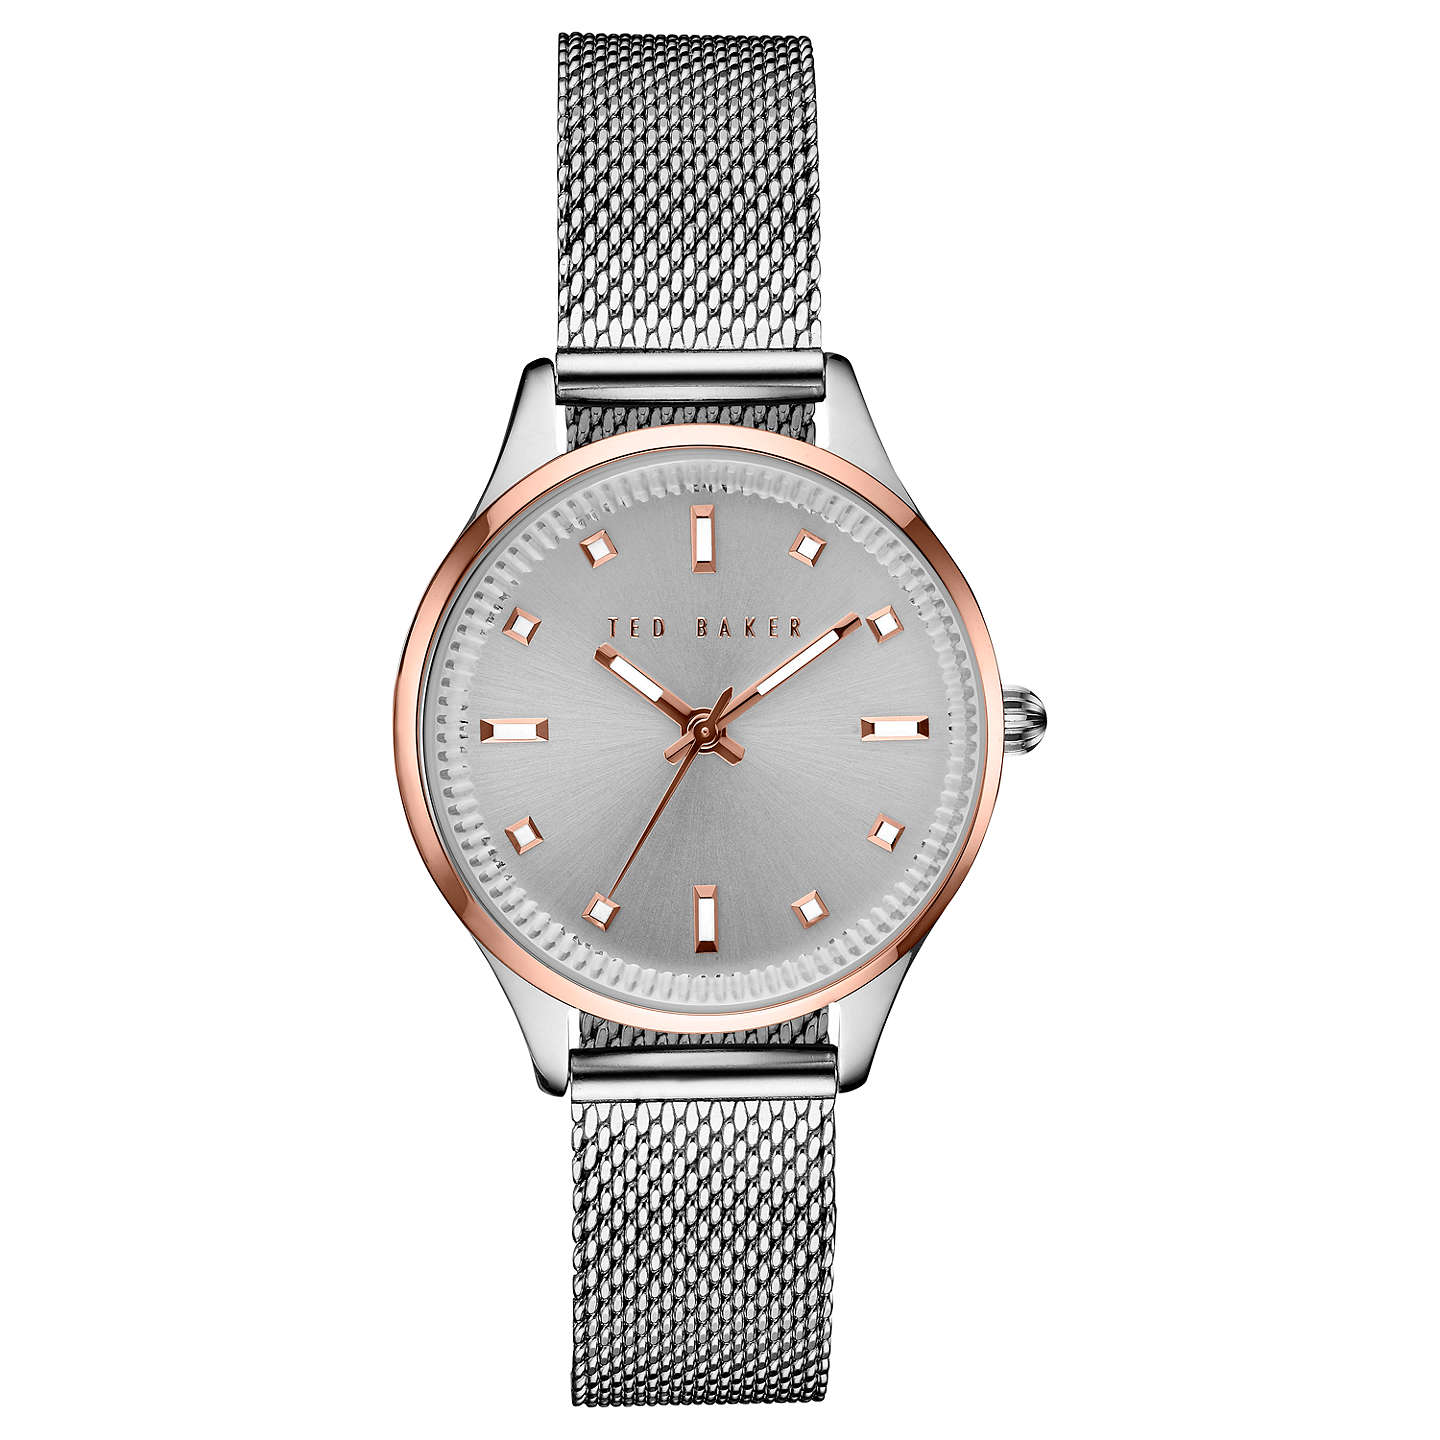 men of mens watches london rack ted baker mm canvas textured shop nordstrom image watch product s